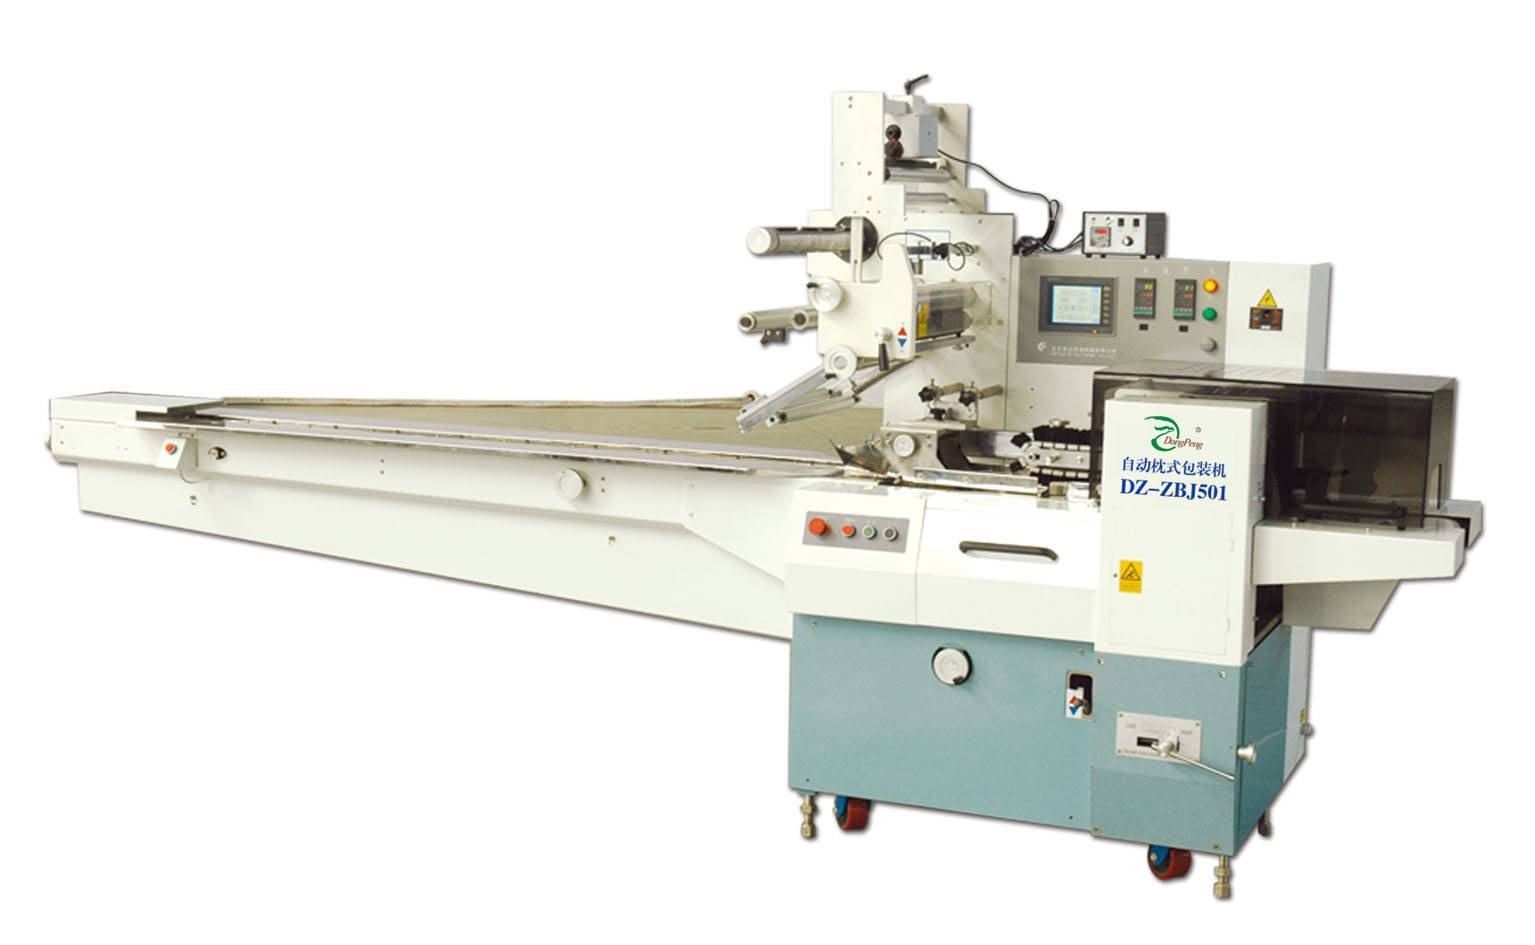 DZ-ZBJ501 Fuji Model Horizontal Packing Machine